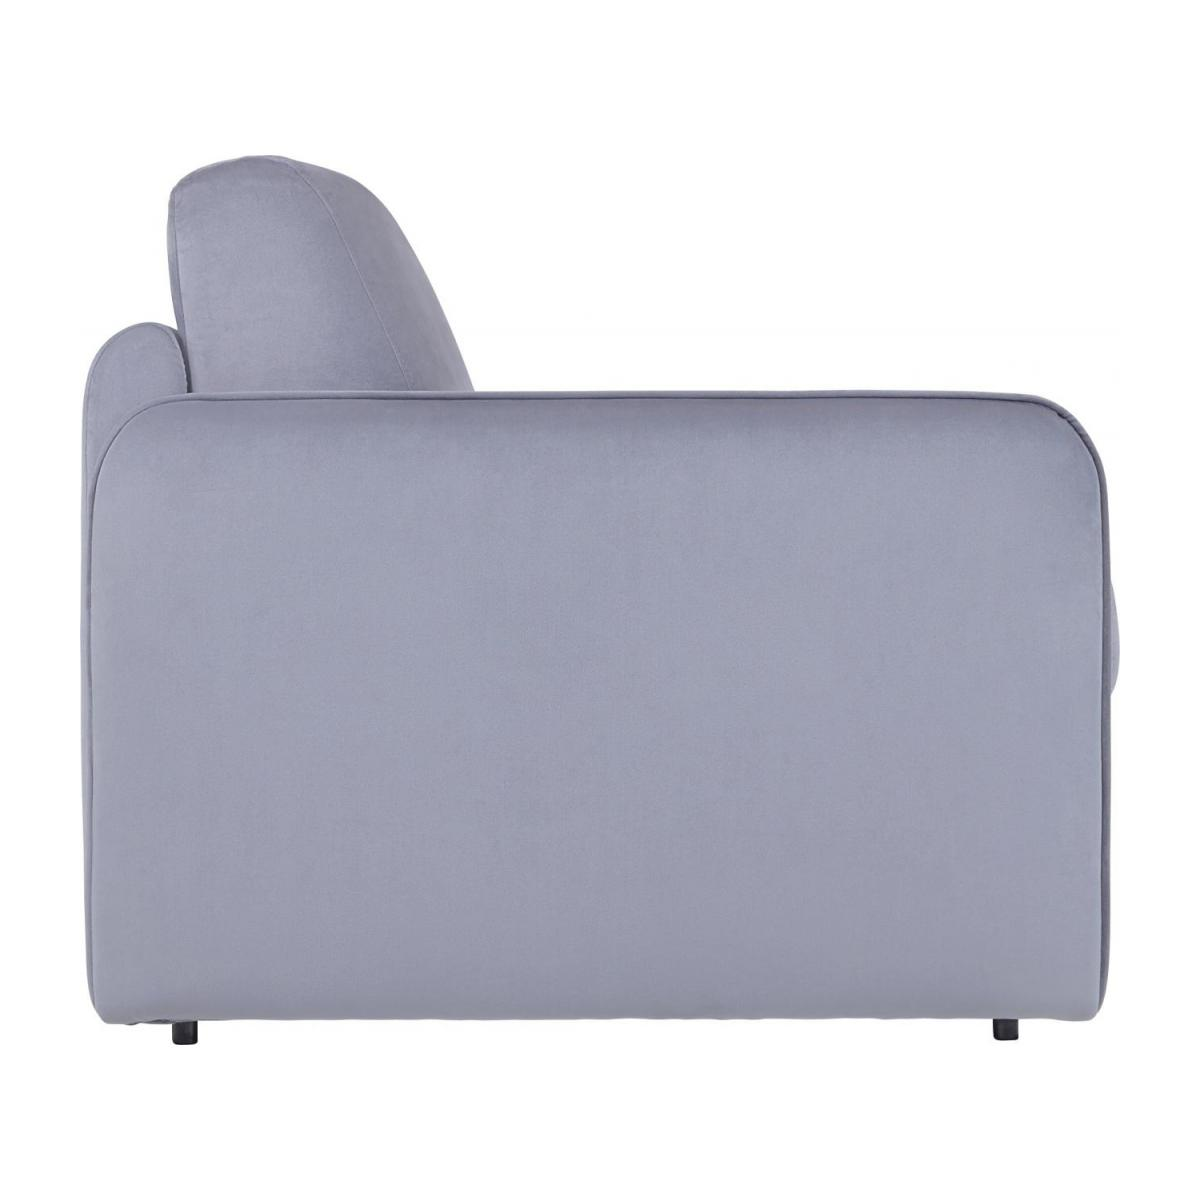 Grey velvet 3 seat fold-out sofa n°6